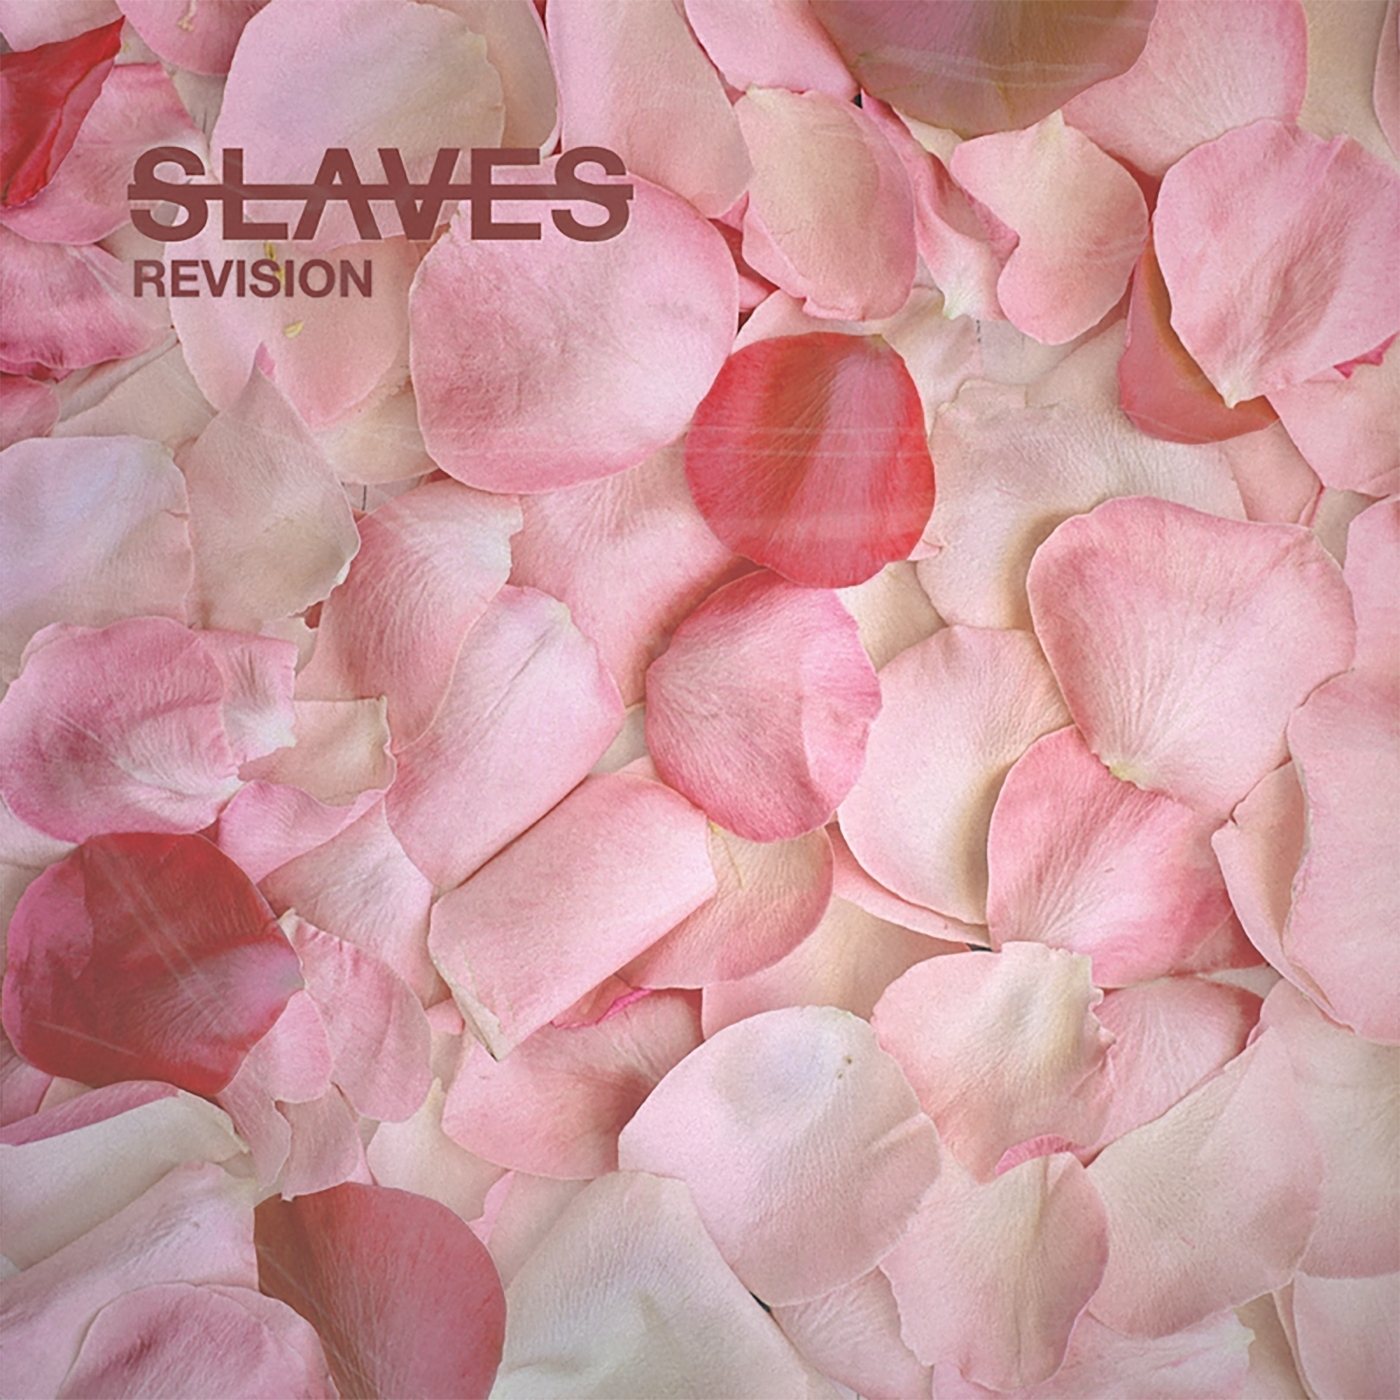 Slaves - Revision (2019)